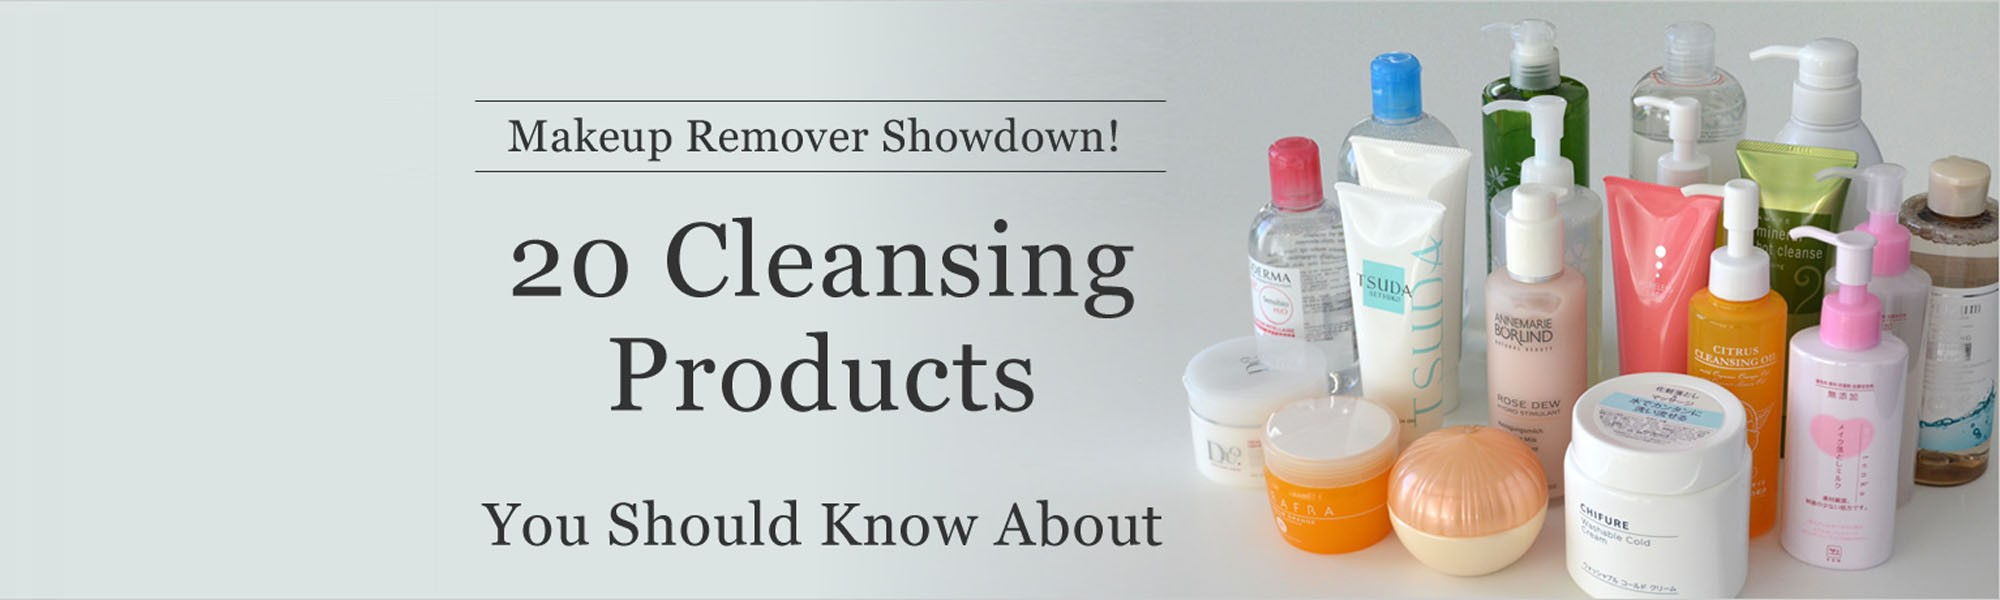 Markup remover showdown!